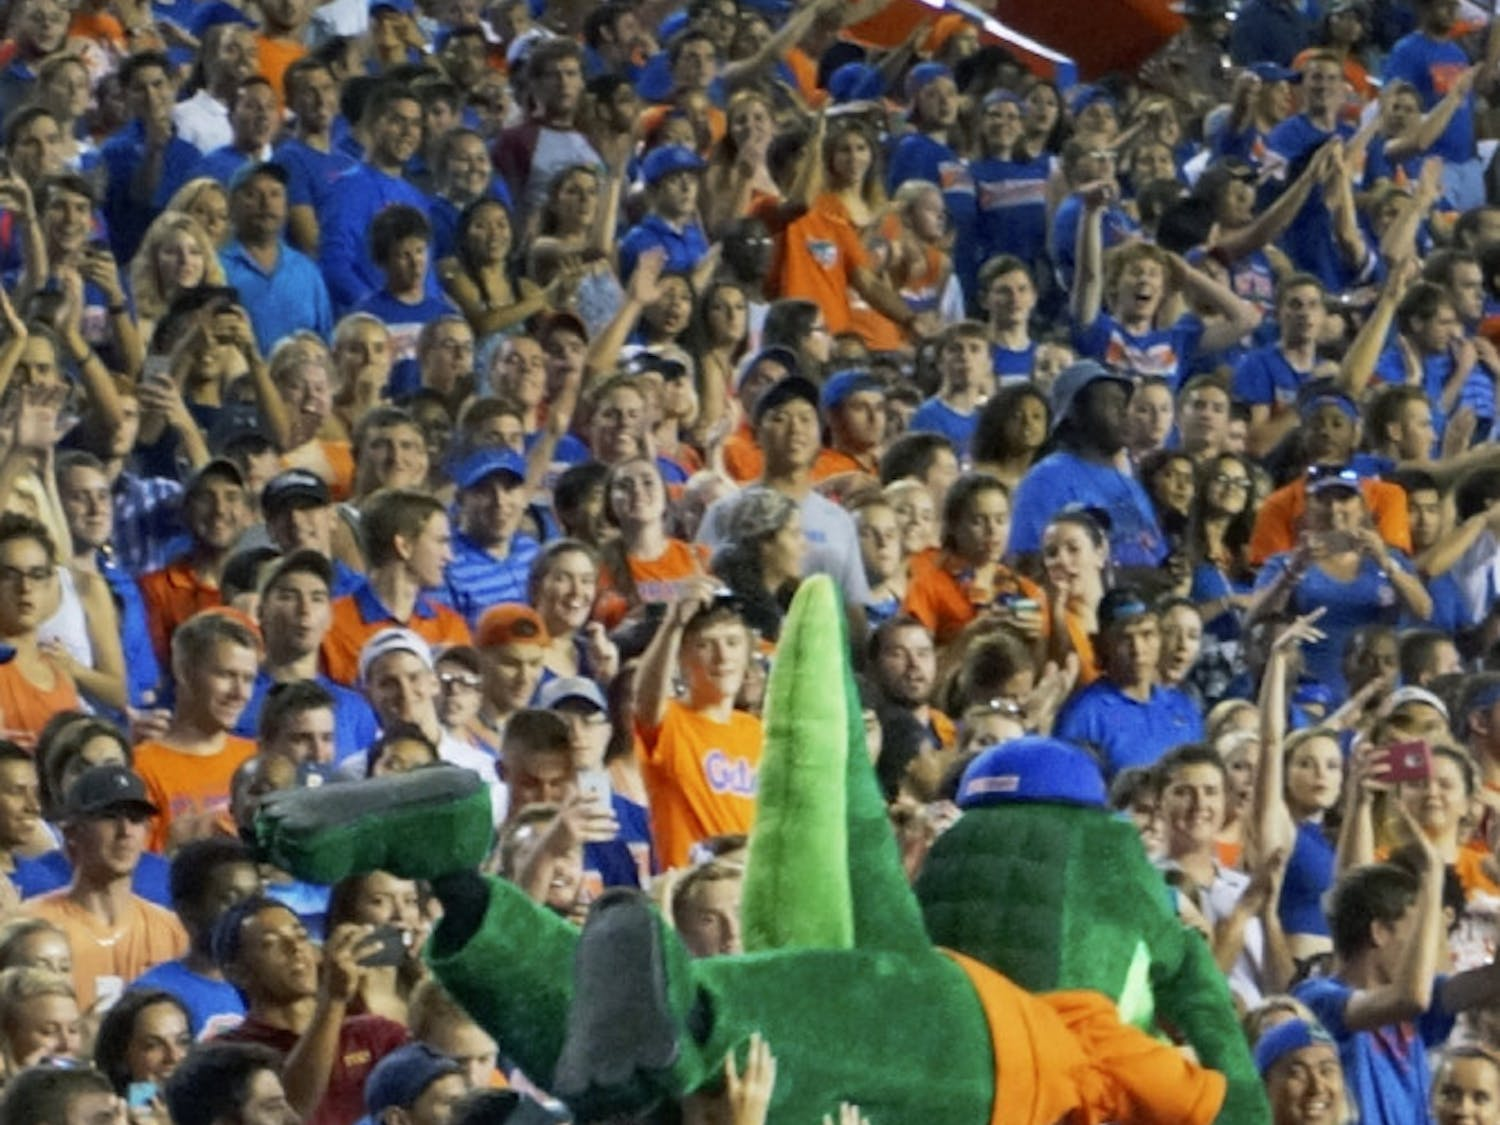 Albert, one of UF's two mascots, surfs the crowd at the football game Sept. 5, 2015. Students and beach balls also traversed across the top of the fray.